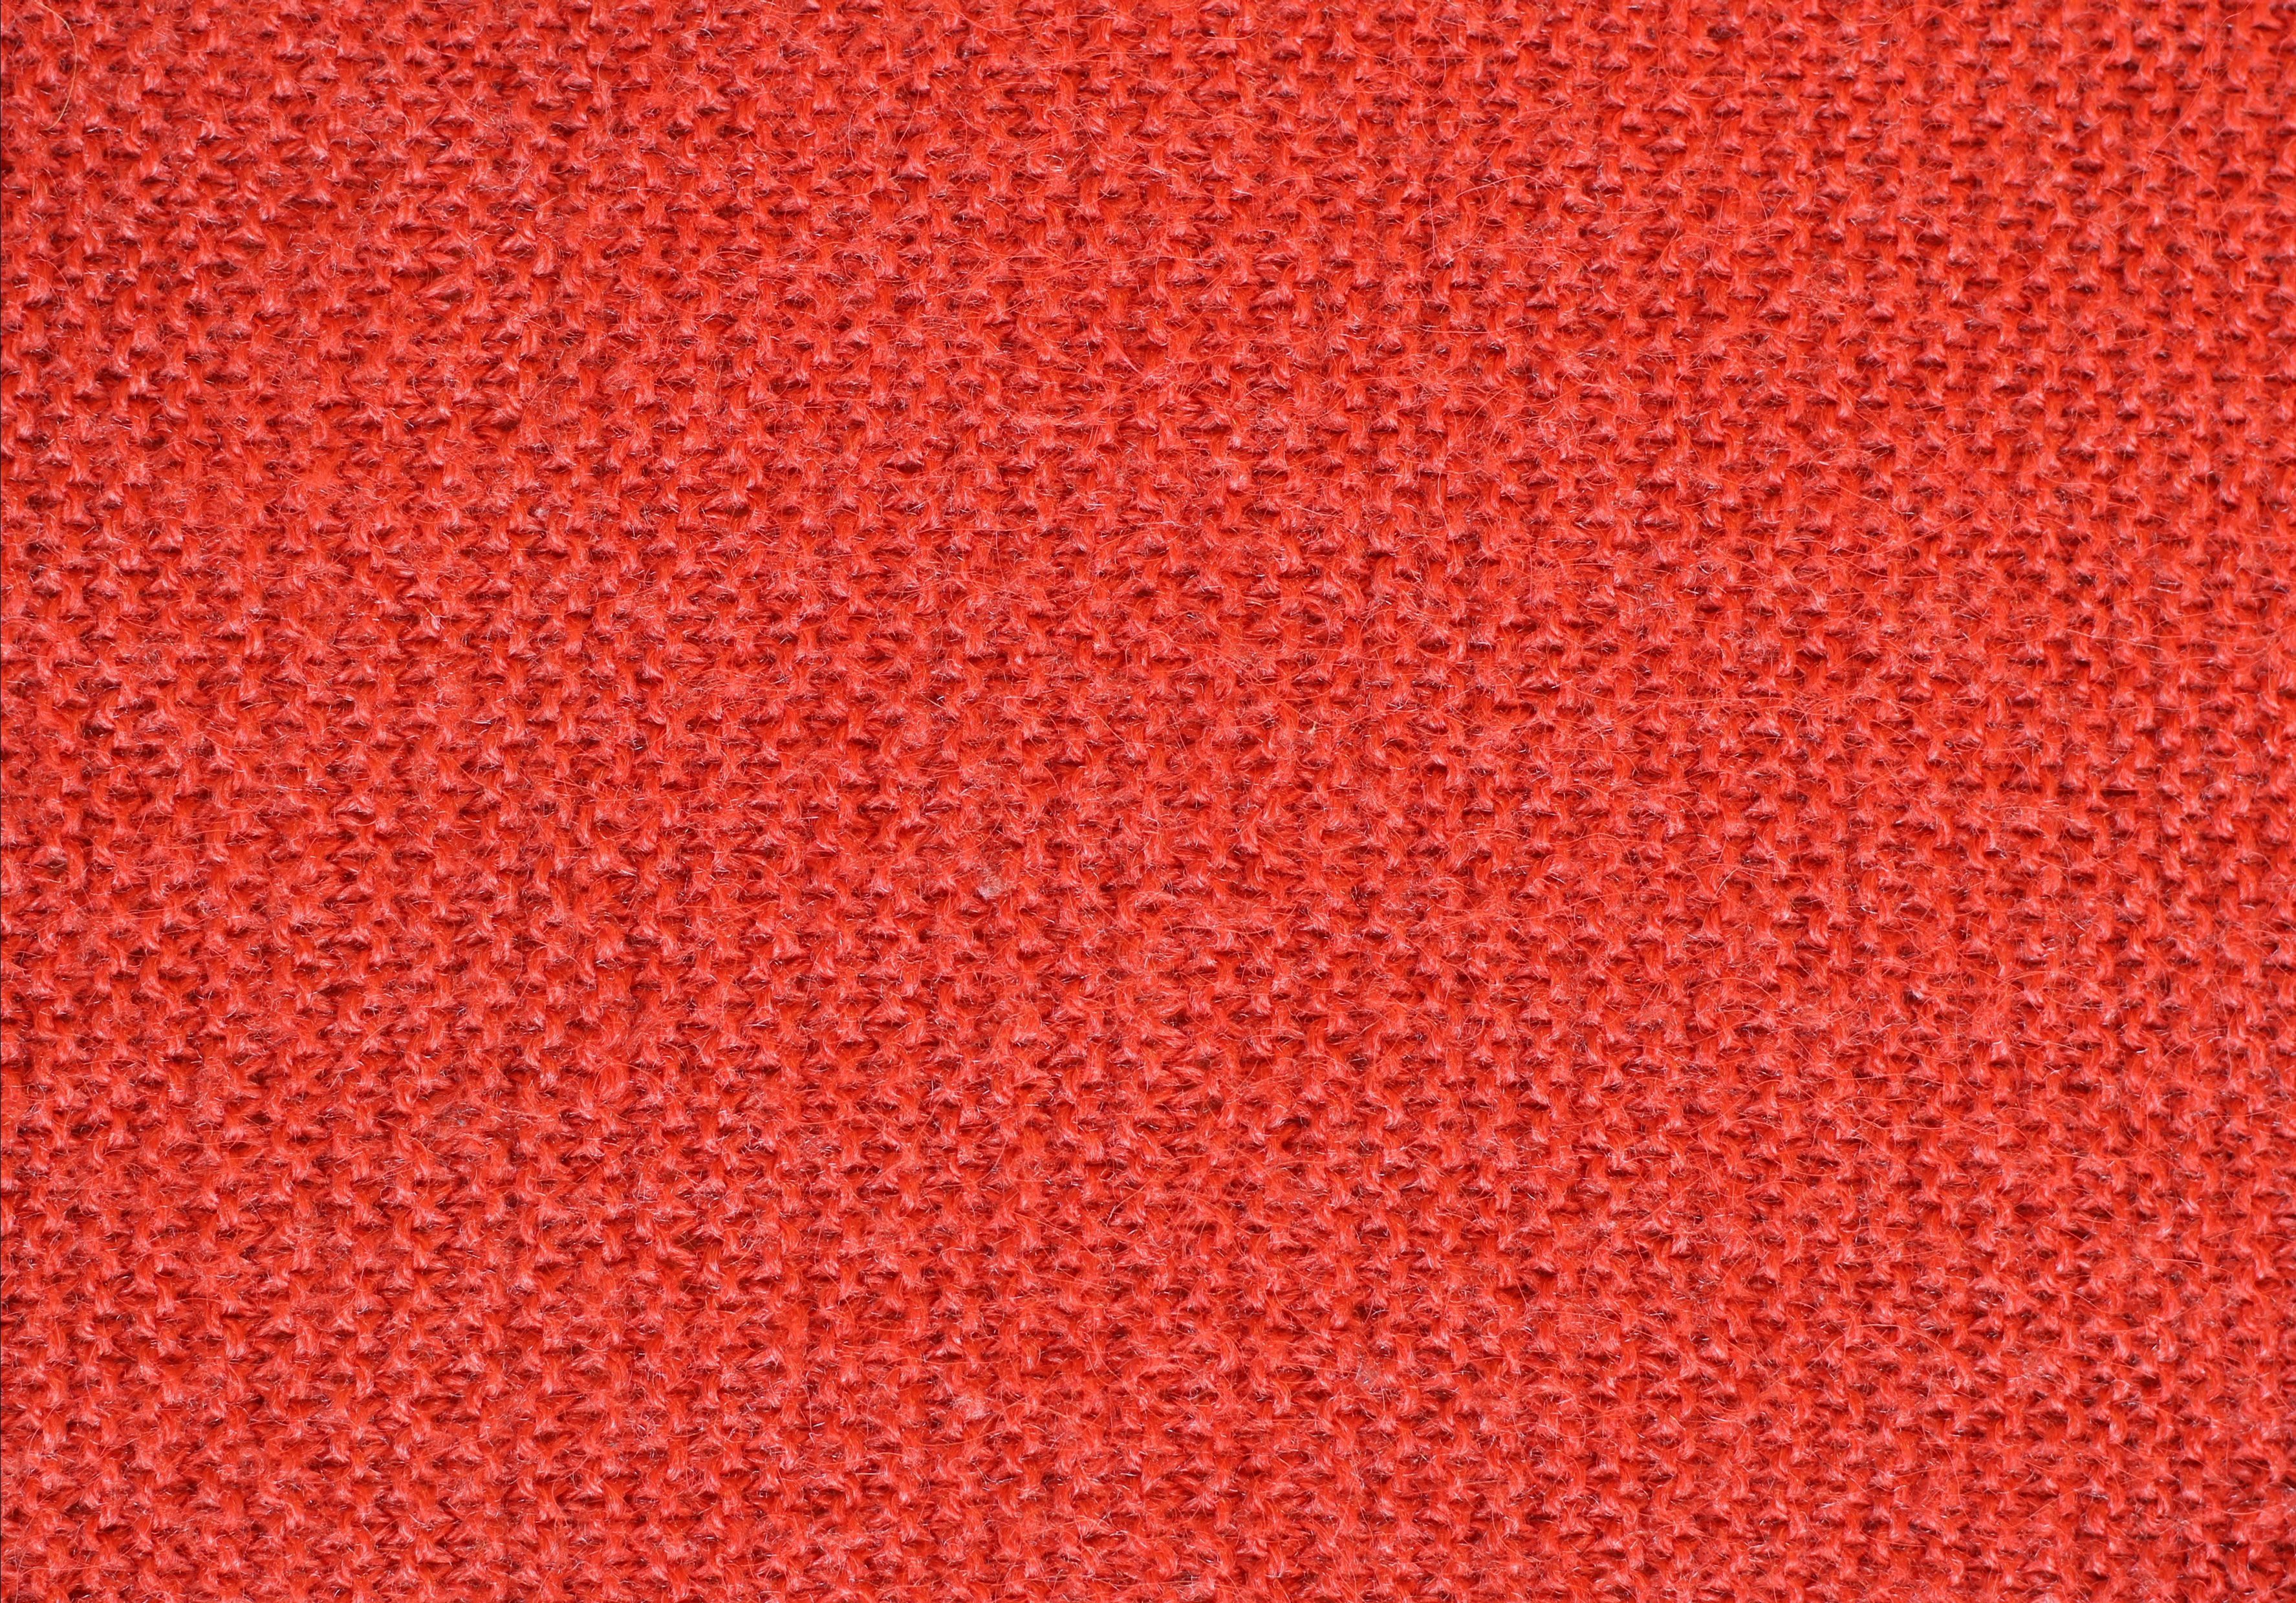 Red knitted wool texture background image for Moquette rouge texture